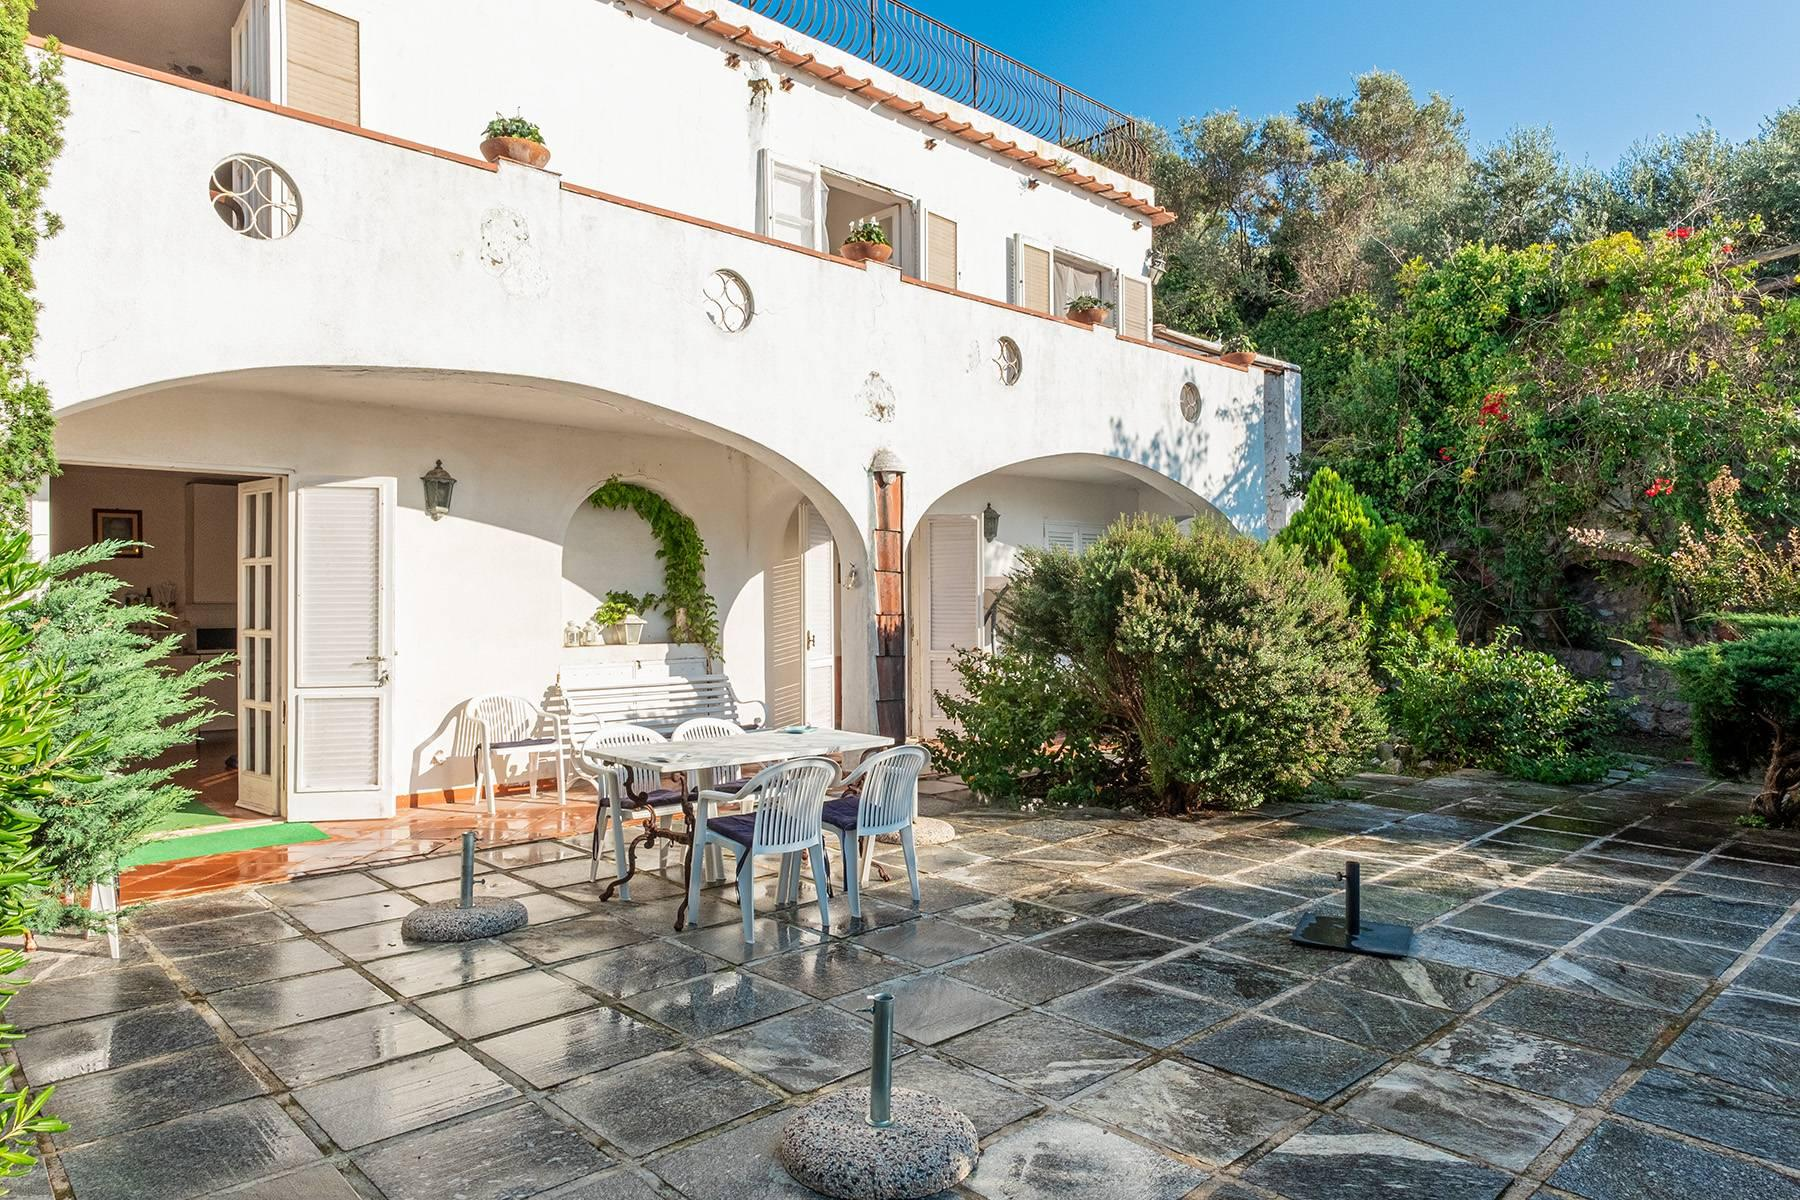 Charming villa with olive grove and swimming pool overlooking the sea - 23